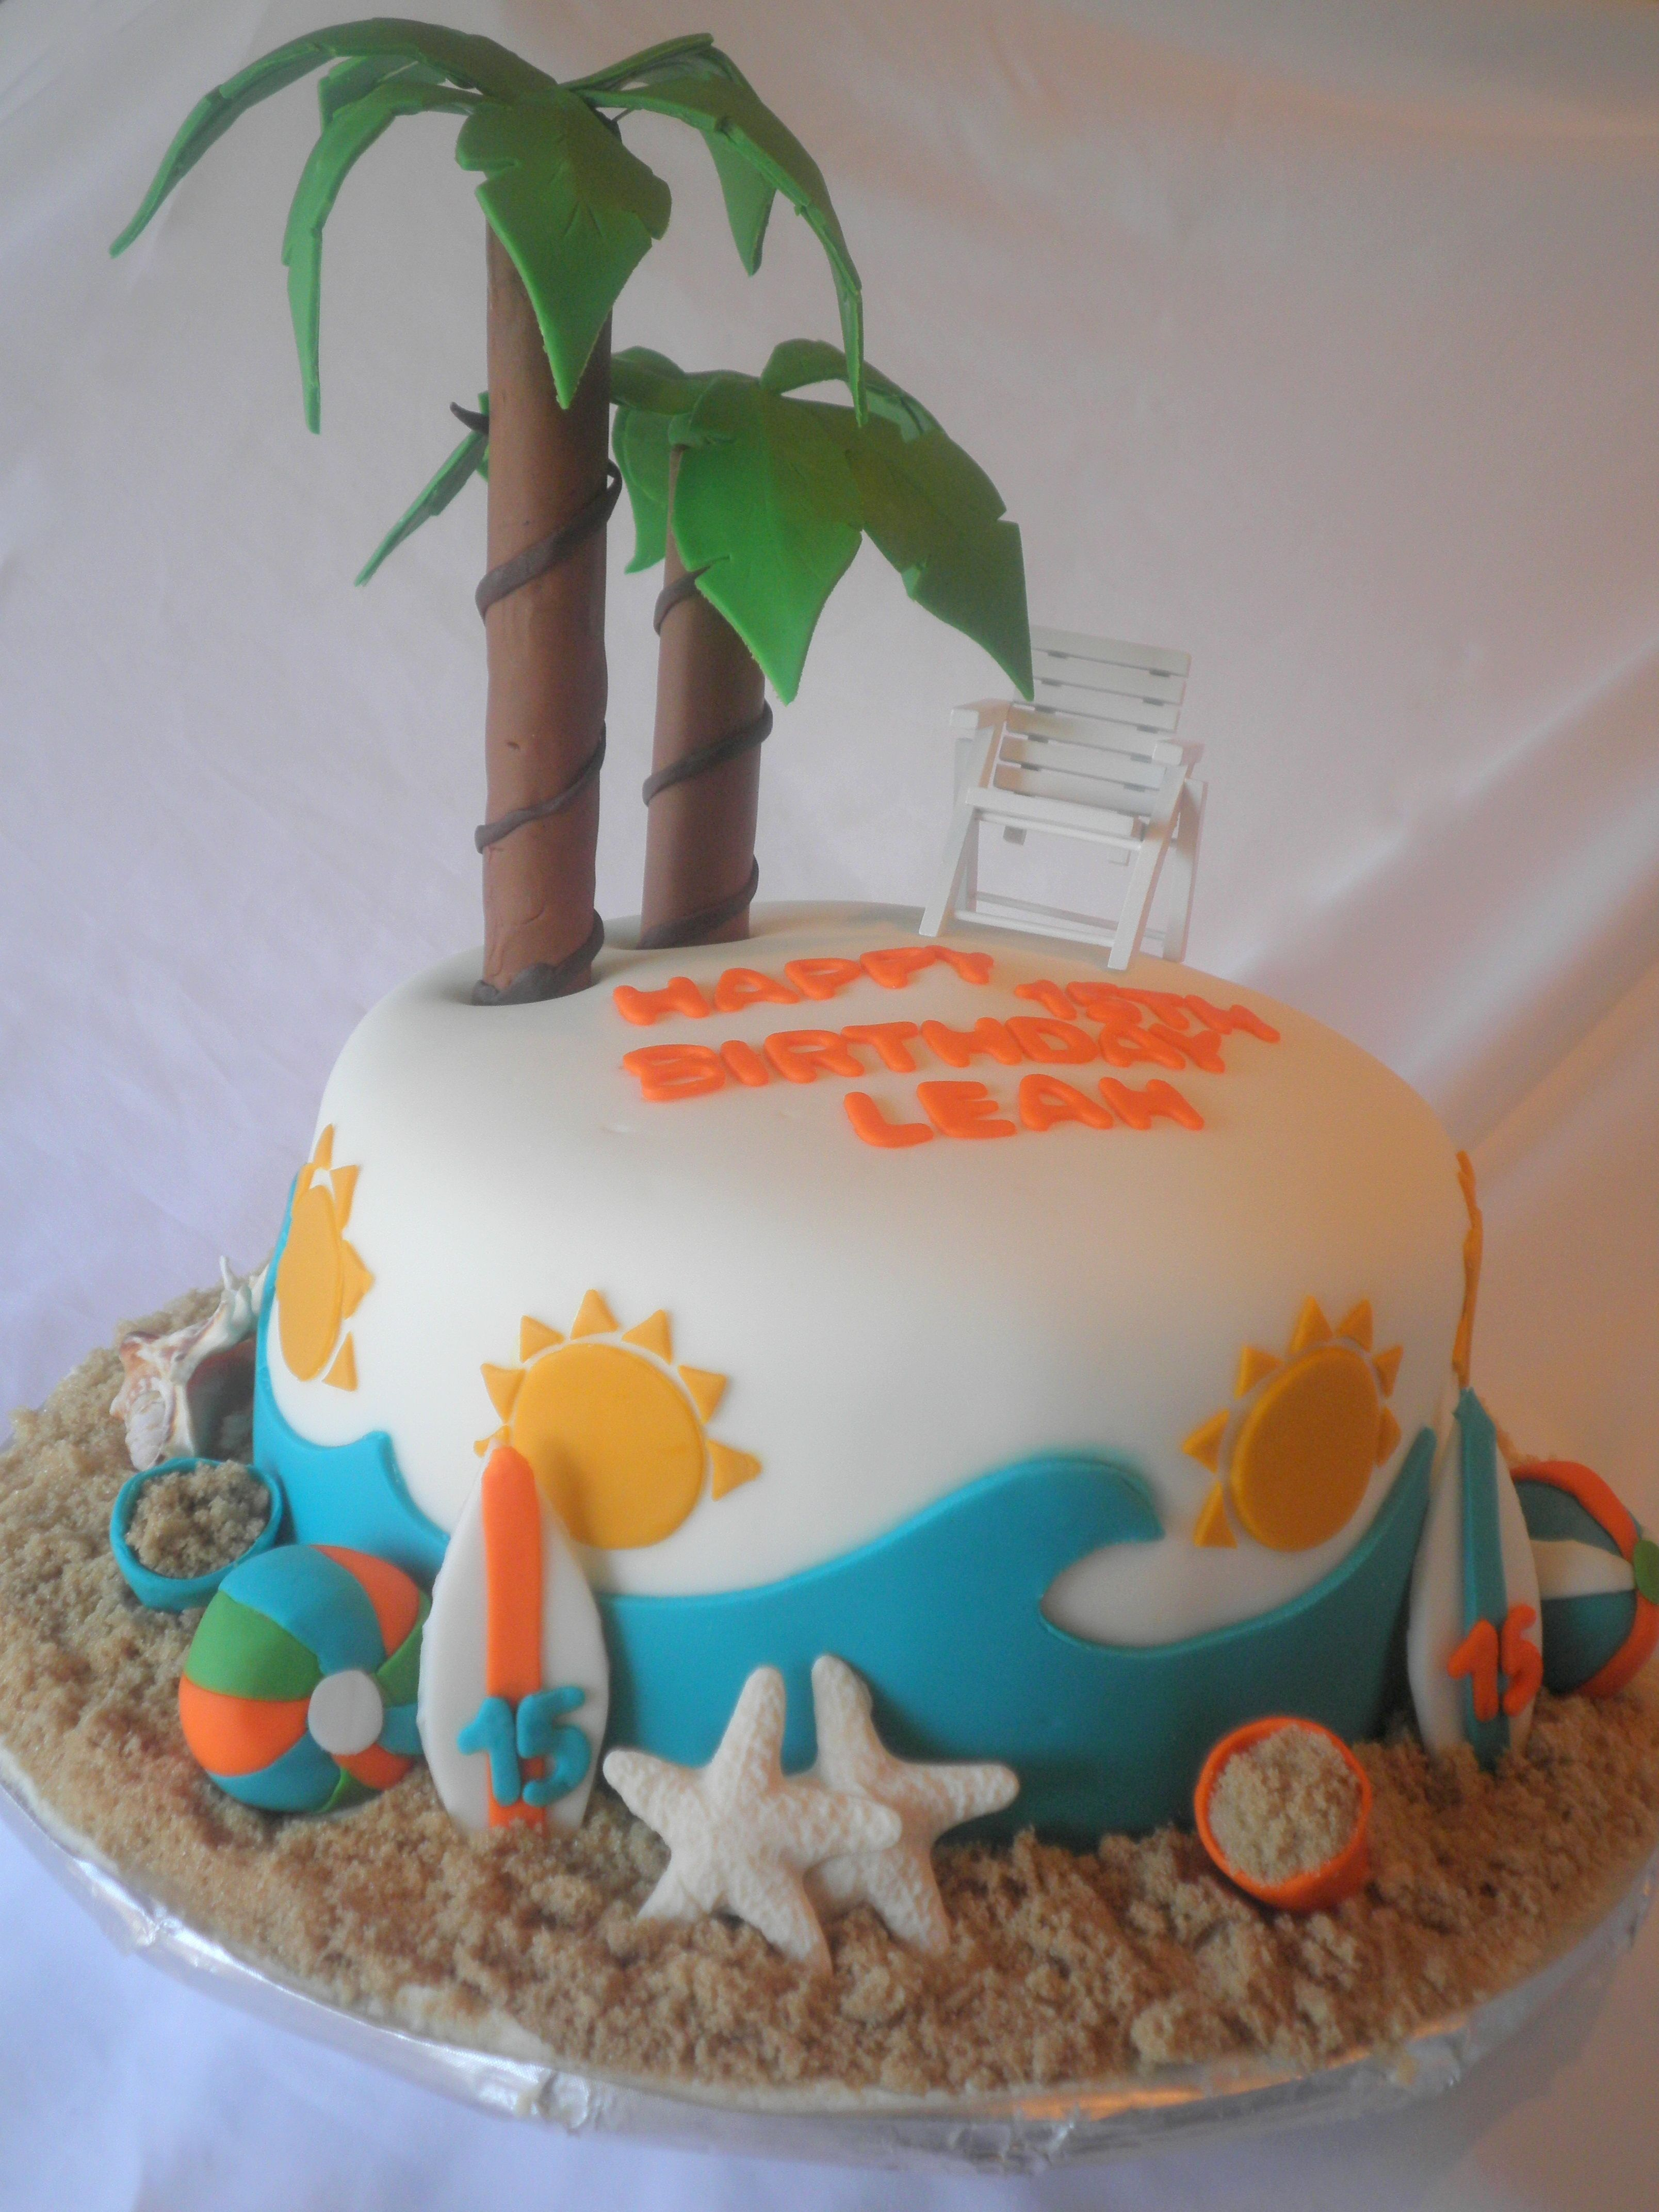 Pleasing Beach Theme Birthday Cakes Pin Beach Themed Birthday Cakes Best Funny Birthday Cards Online Inifofree Goldxyz